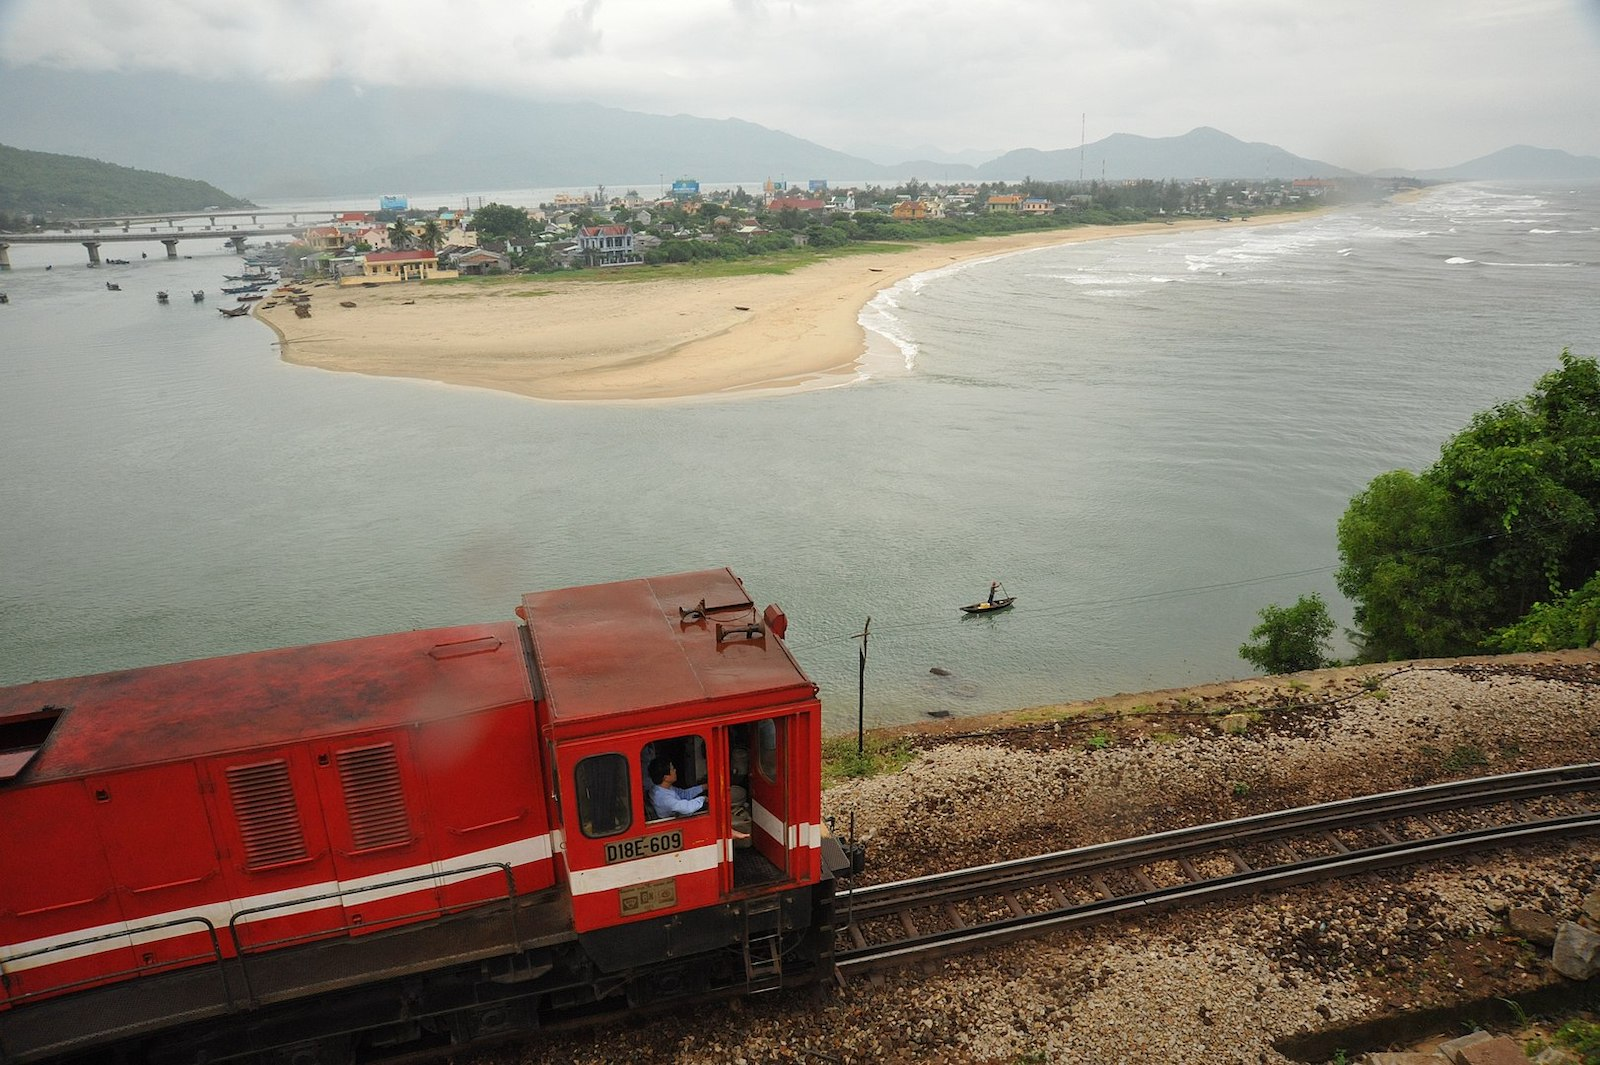 Image of the Reunification Express at the Lang Co Strait in Vietnam